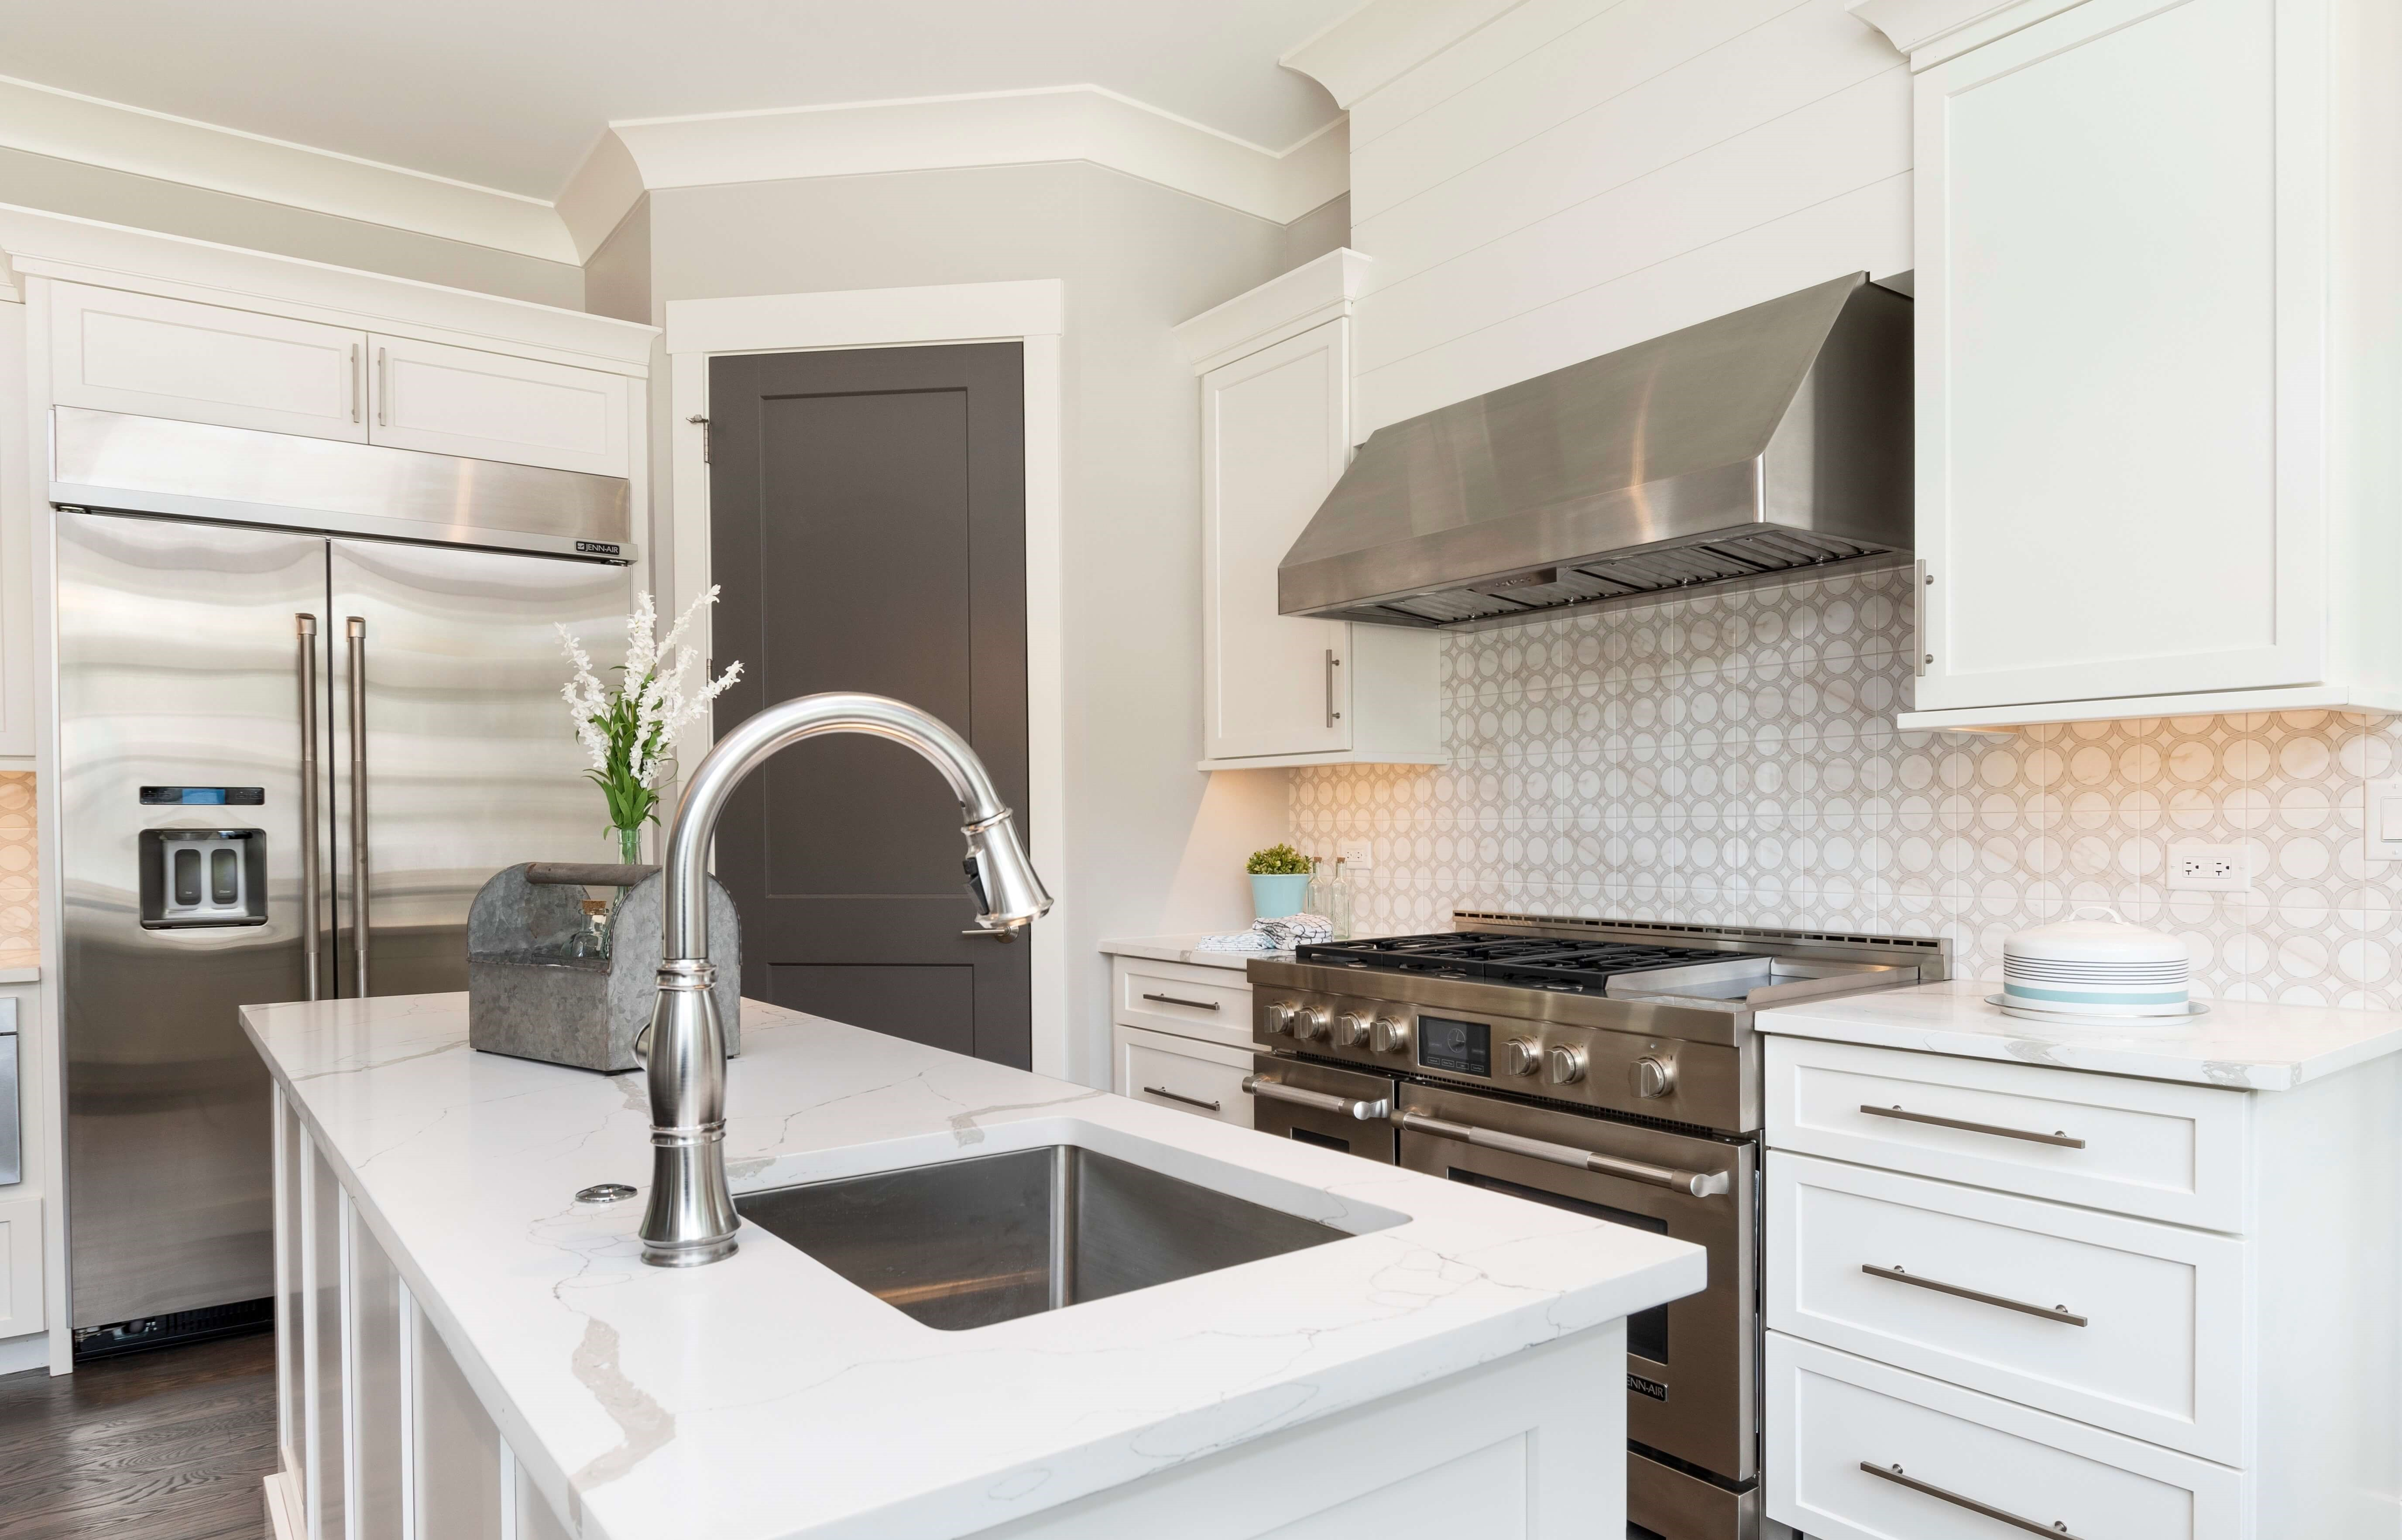 Beautiful kitchen with stainless steel appliances, white custom cabinets and backsplash